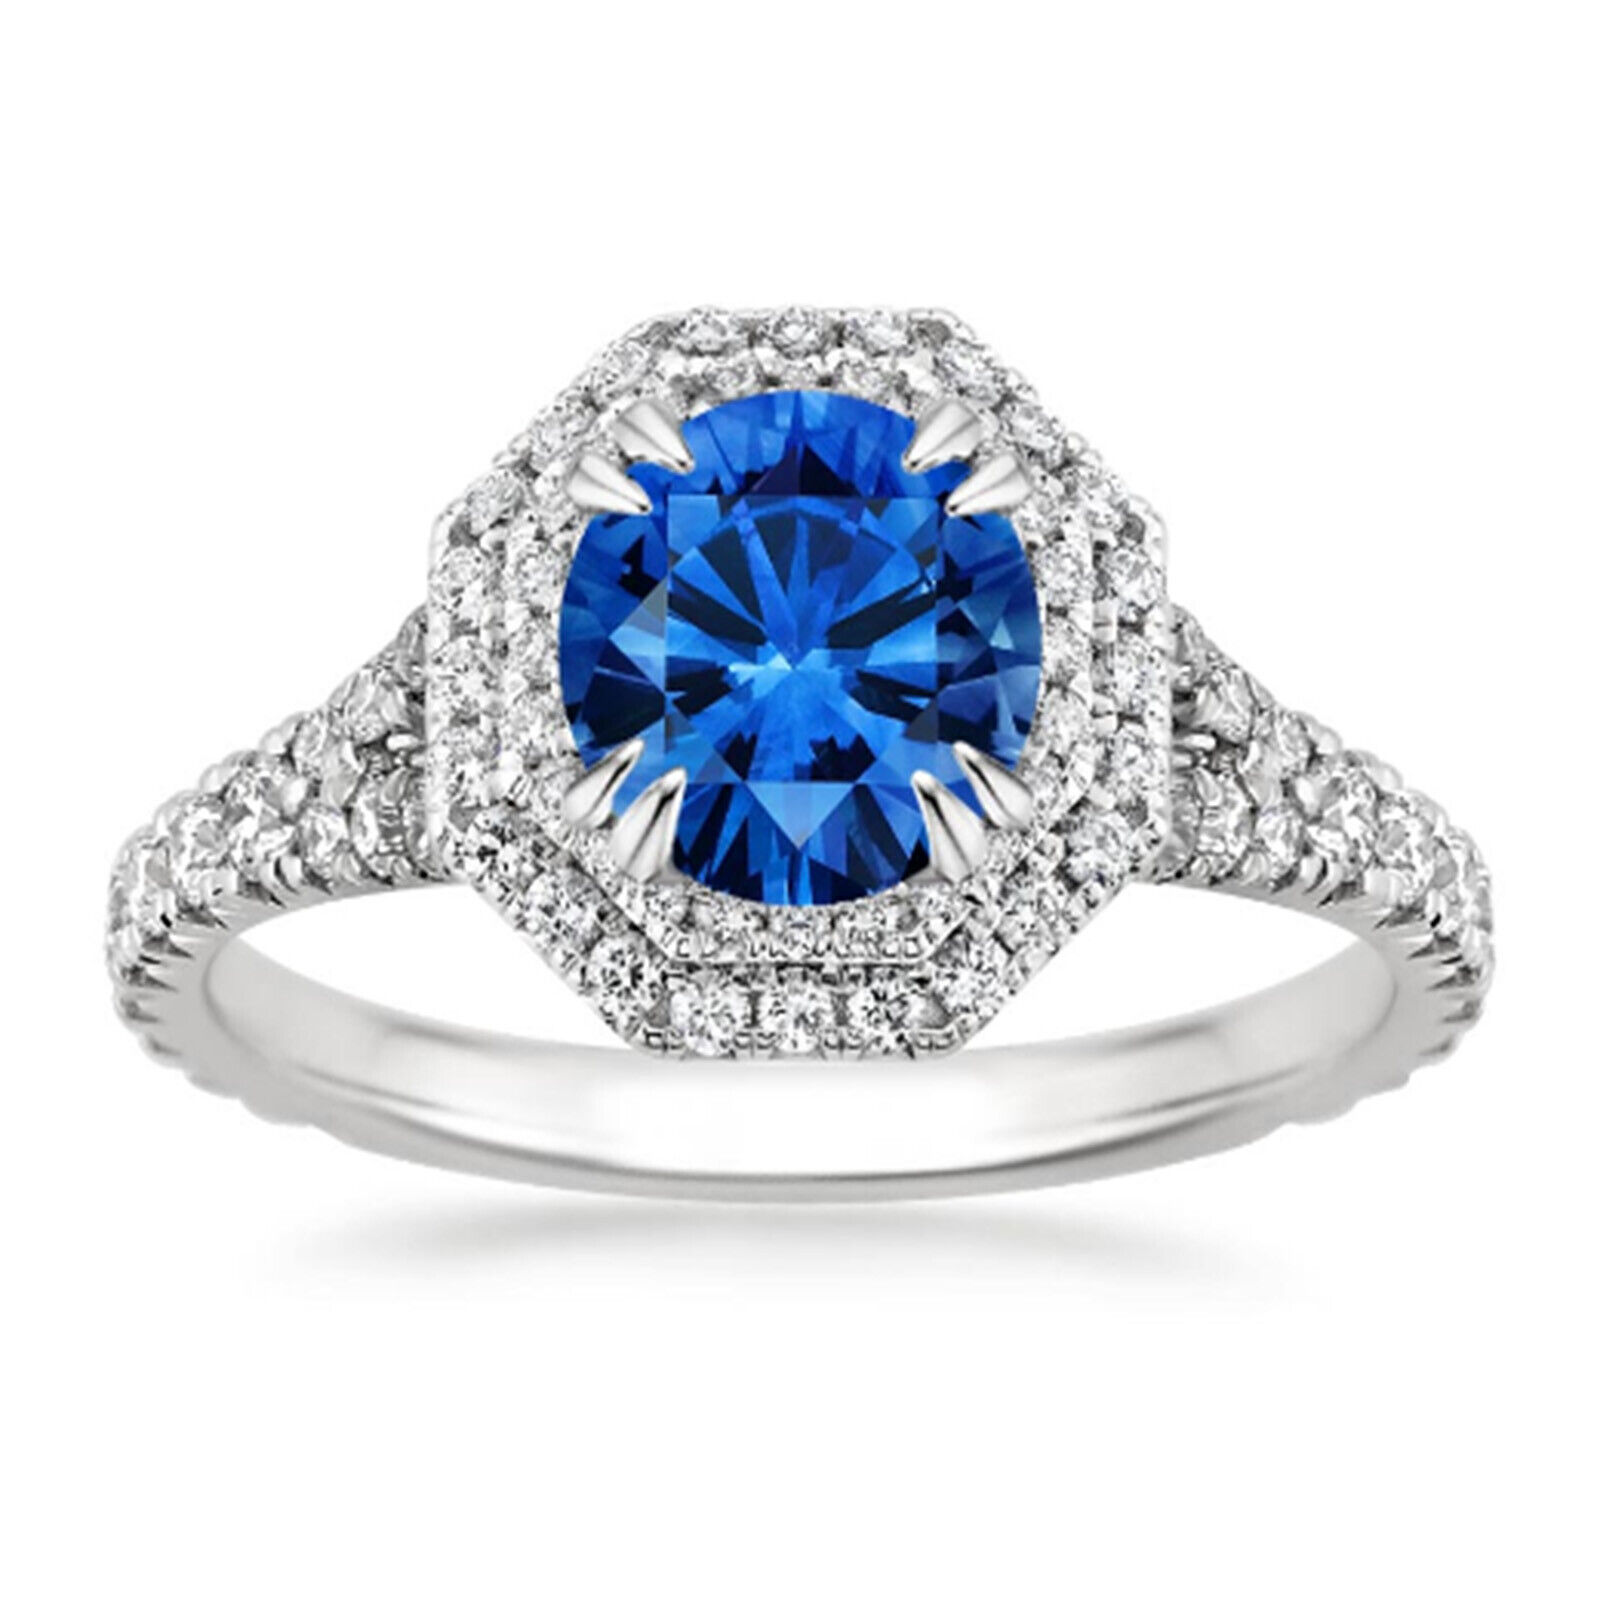 2.05 Ct bluee Sapphire Gemstone Ring 14K Solid White gold Natural Diamond Size O